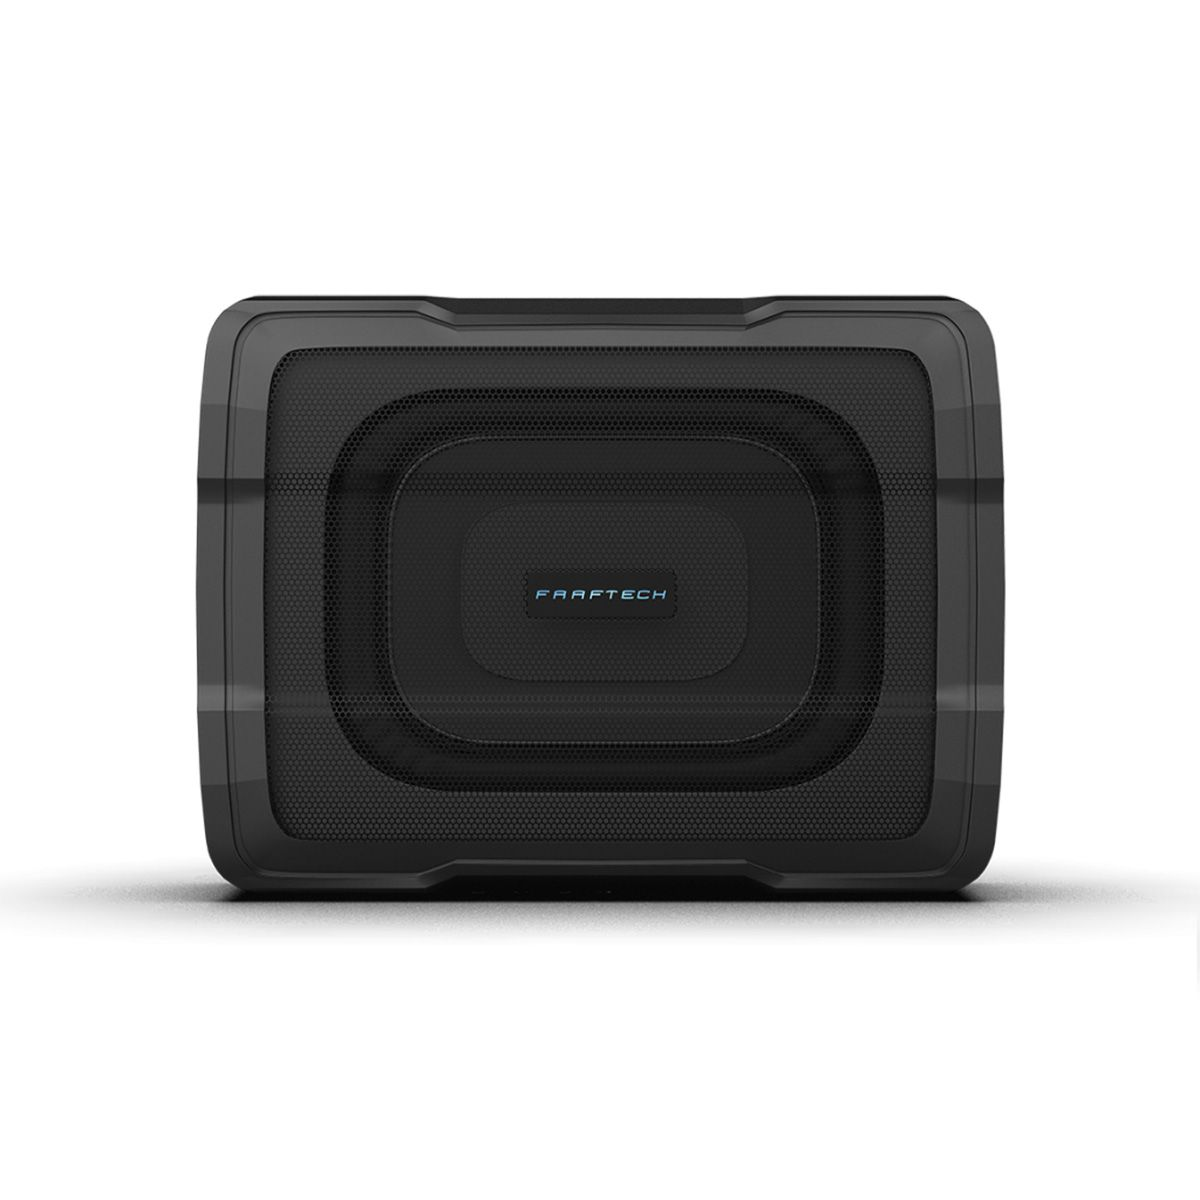 Subwoofer Ativo Plug and Play 100W RMS T Corolla FT-SW68 TY Faaftech